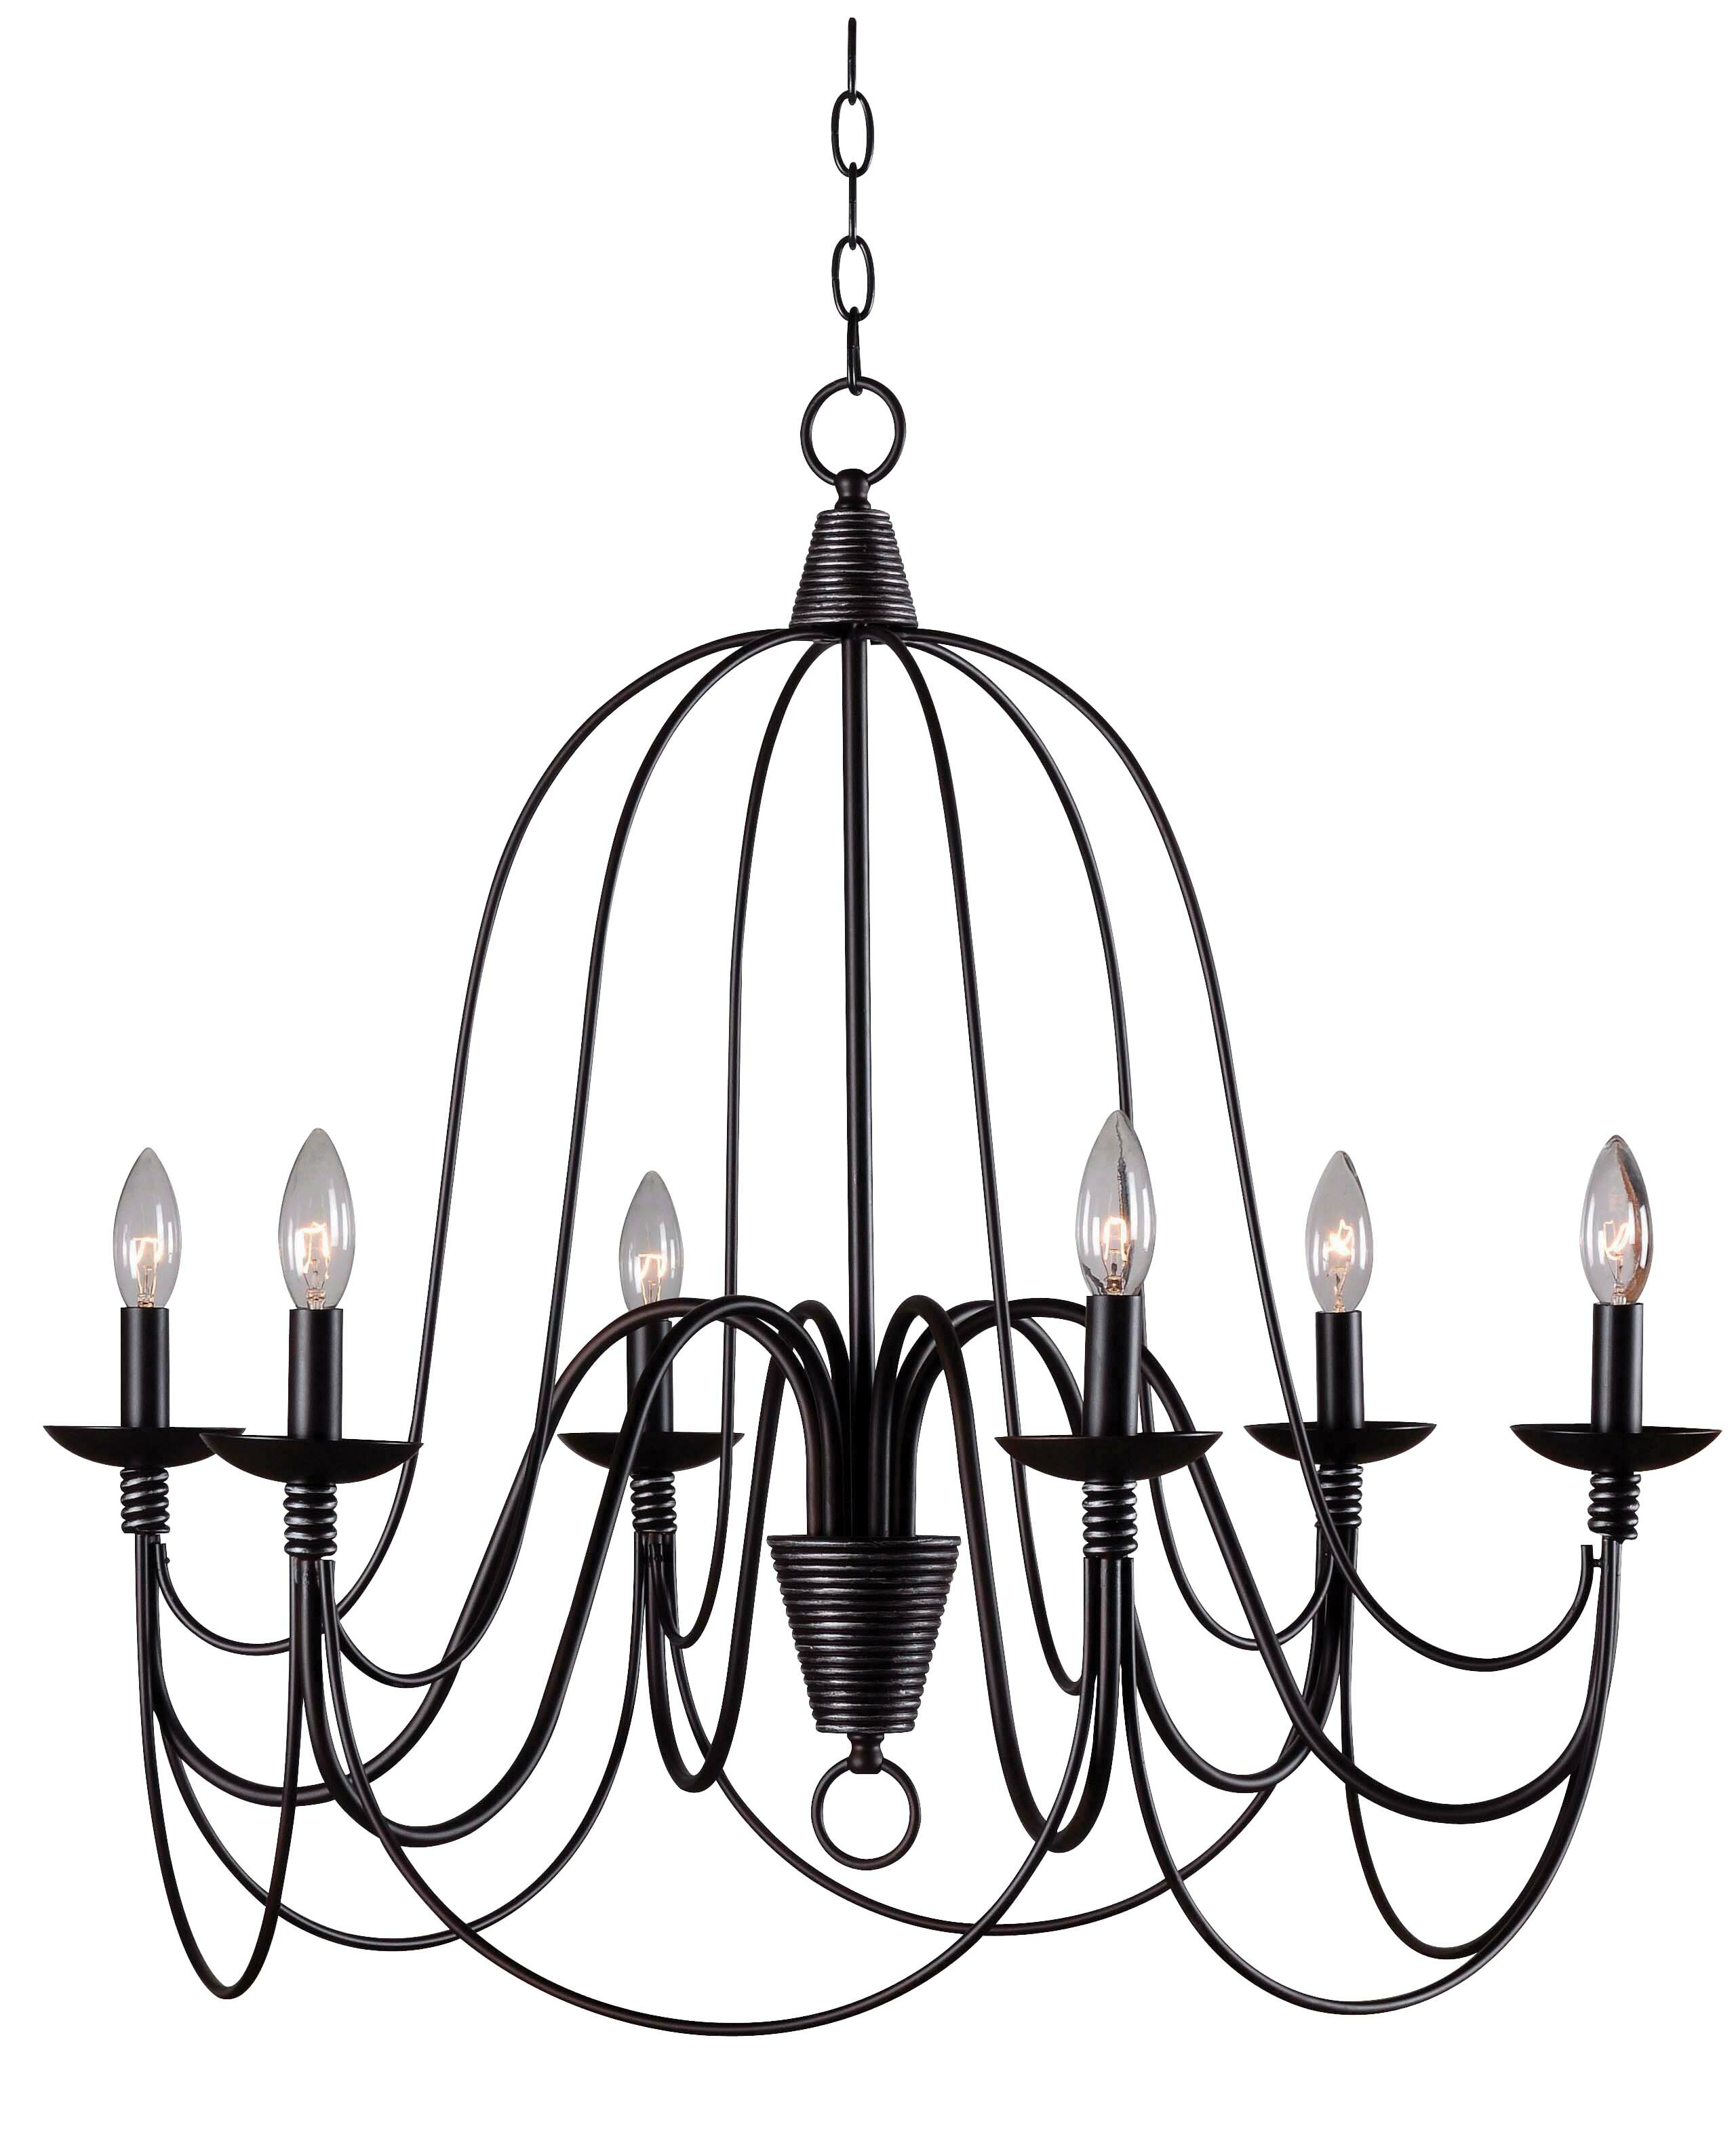 Kollman 6 Light Candle Style Chandelier With Diaz 6 Light Candle Style Chandeliers (Gallery 5 of 30)